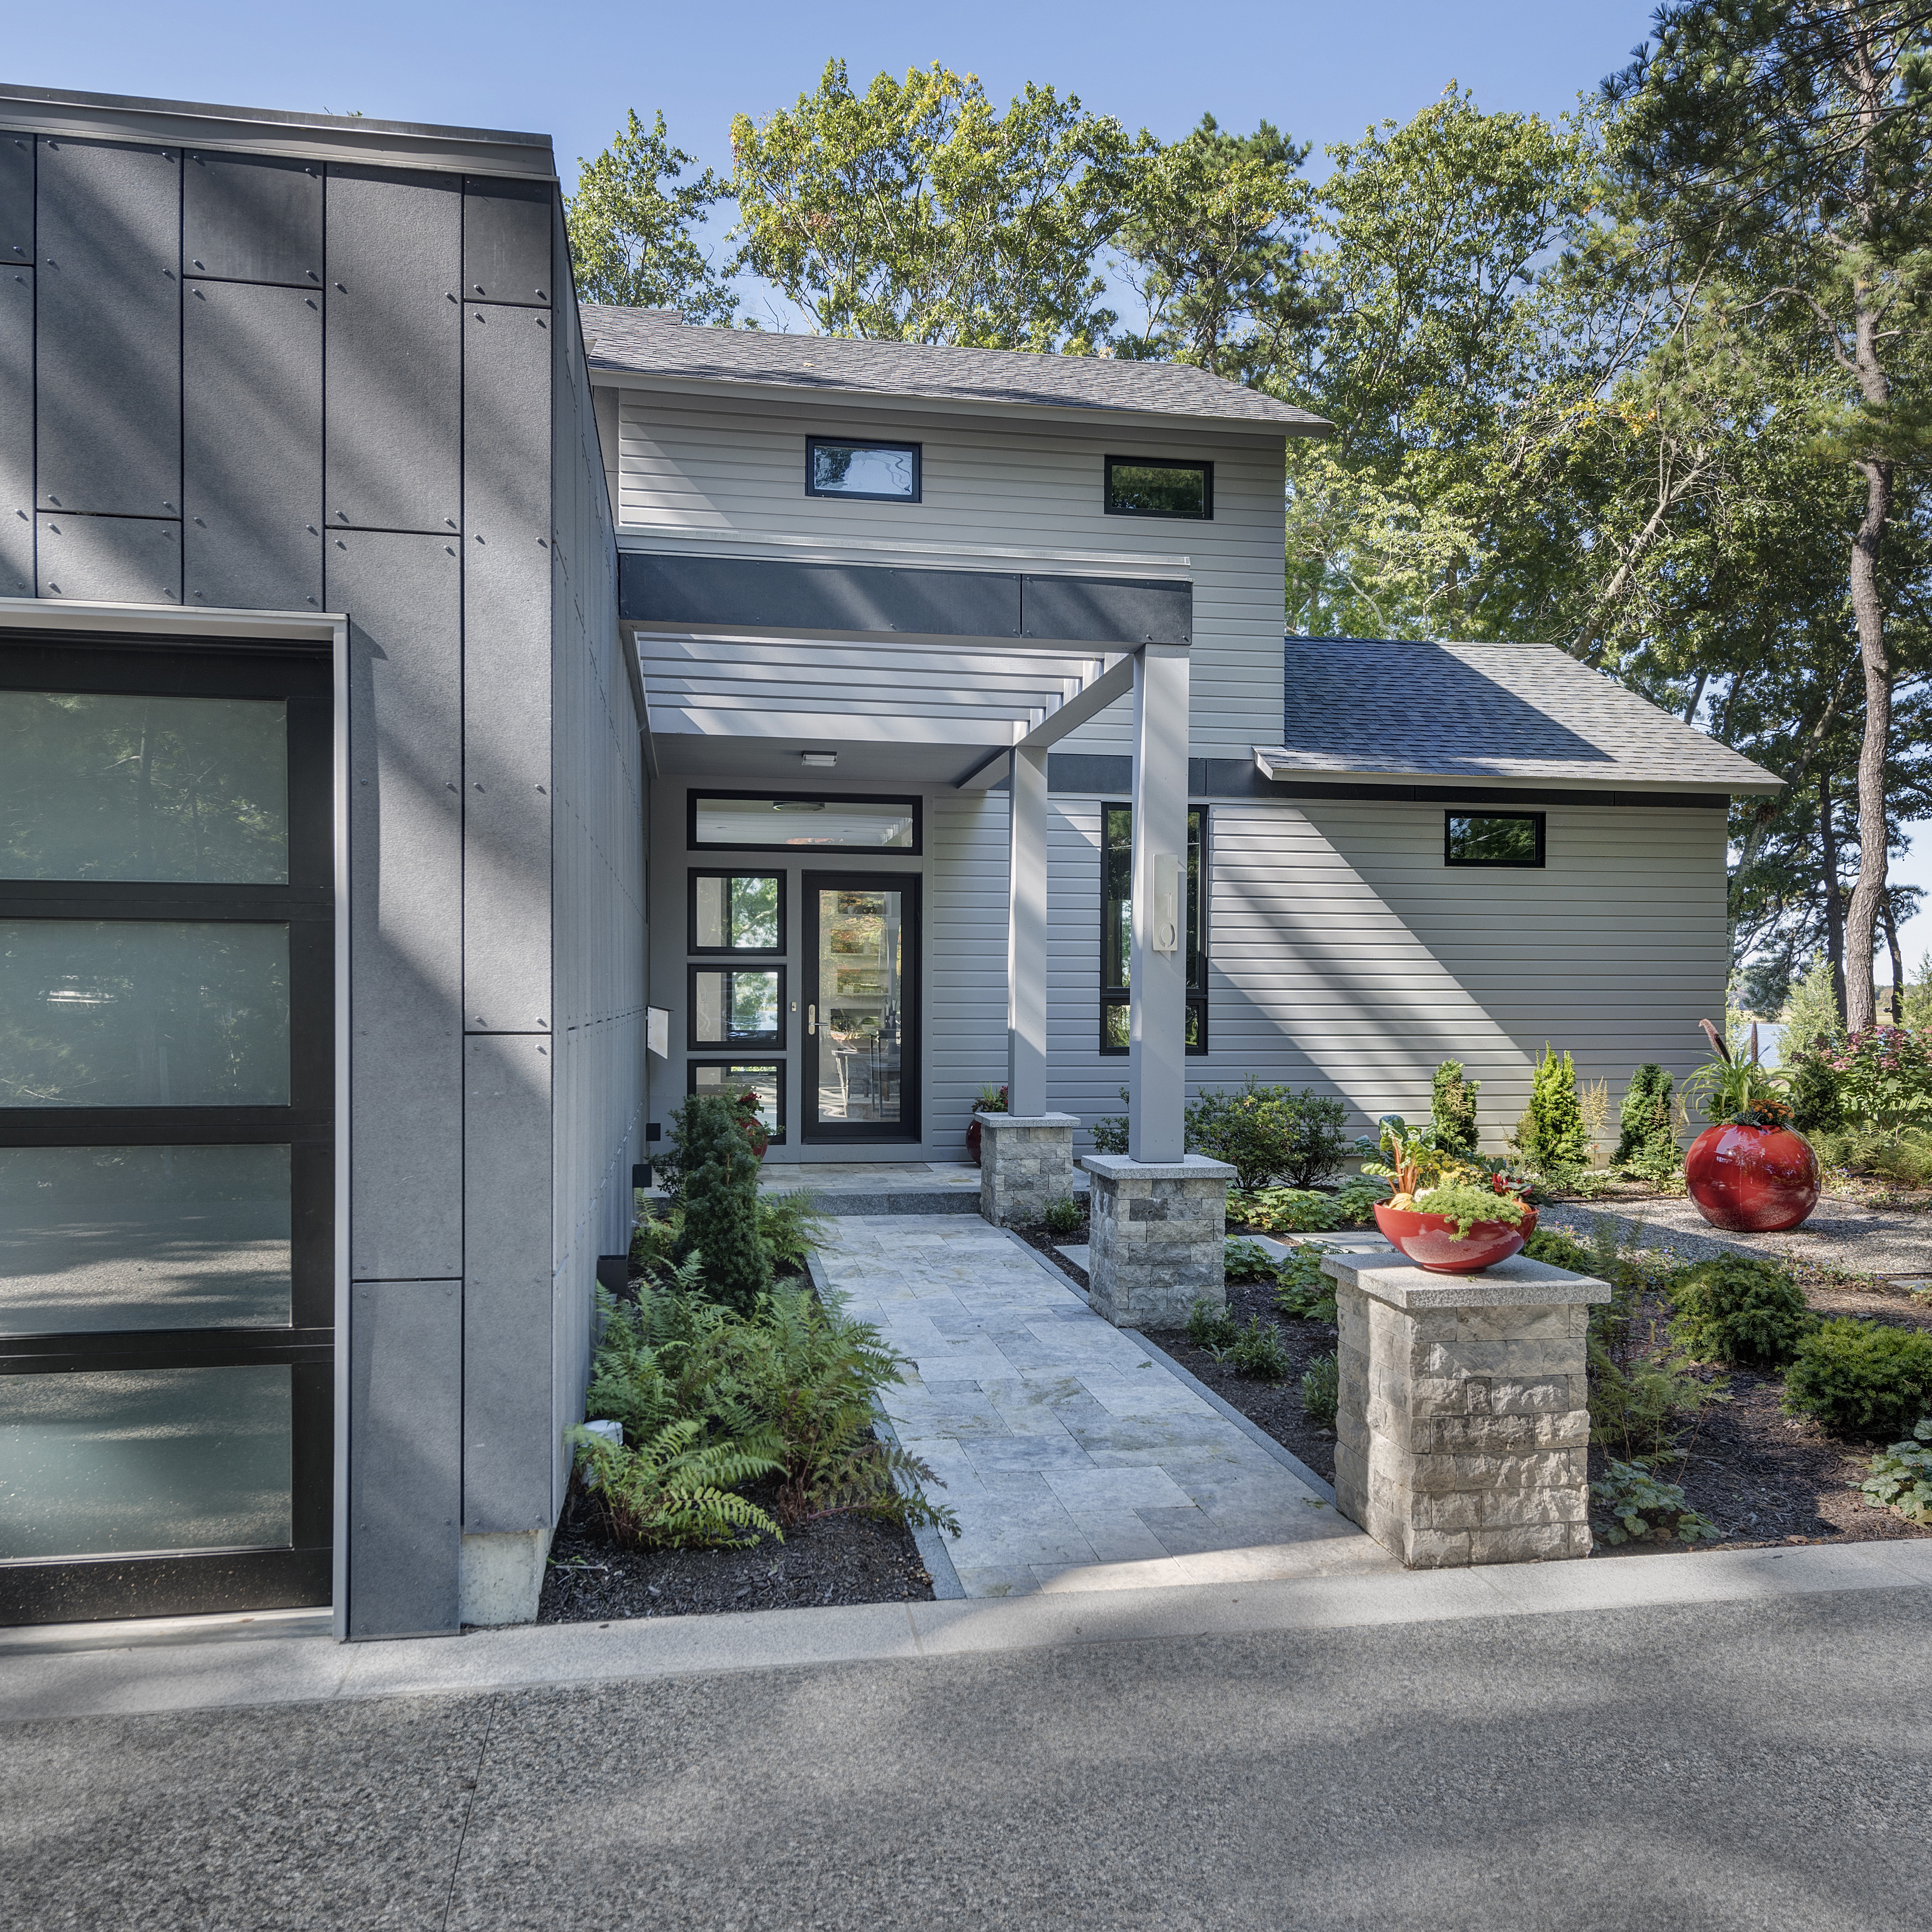 Kite_1532_Hundred Acre Cove_Greenspan Residence_Exterior_Day_Front